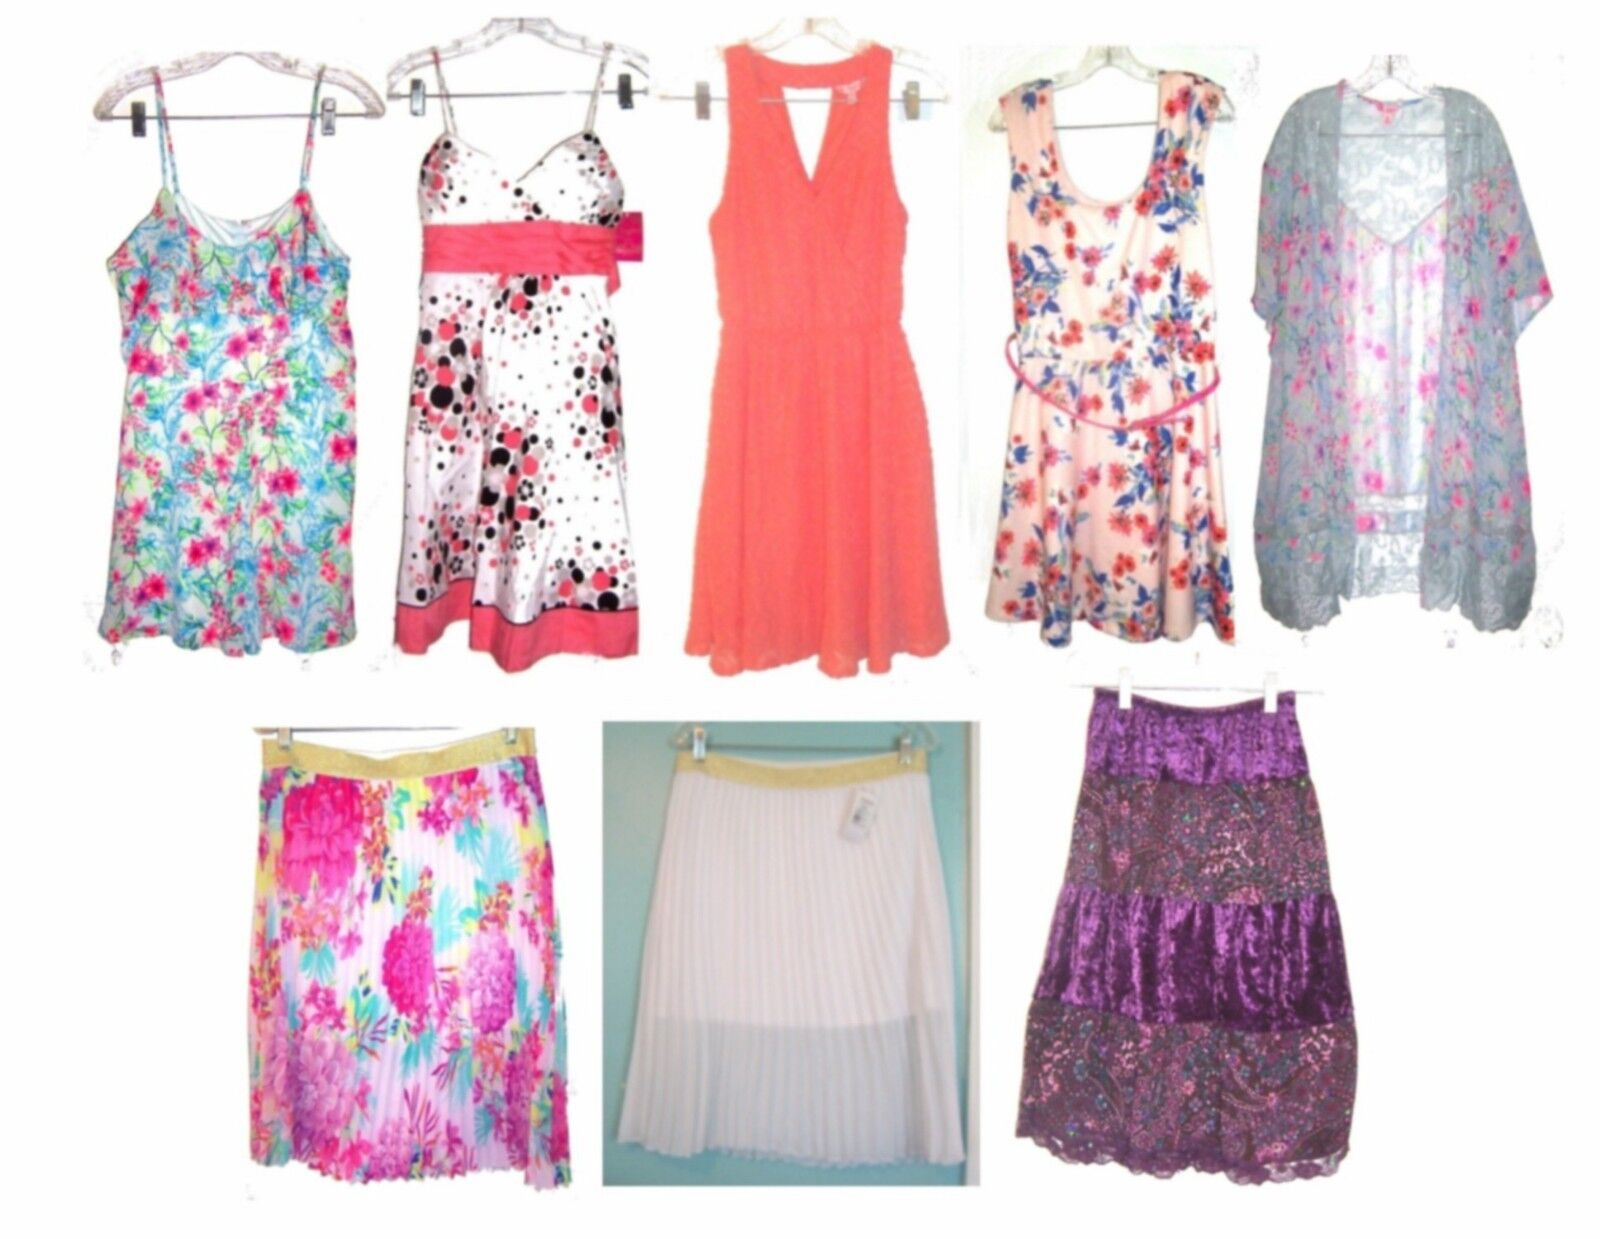 Candie's Dresses, Sundresses, Skirts & Rompers NWT 40- 58 Size M to XL